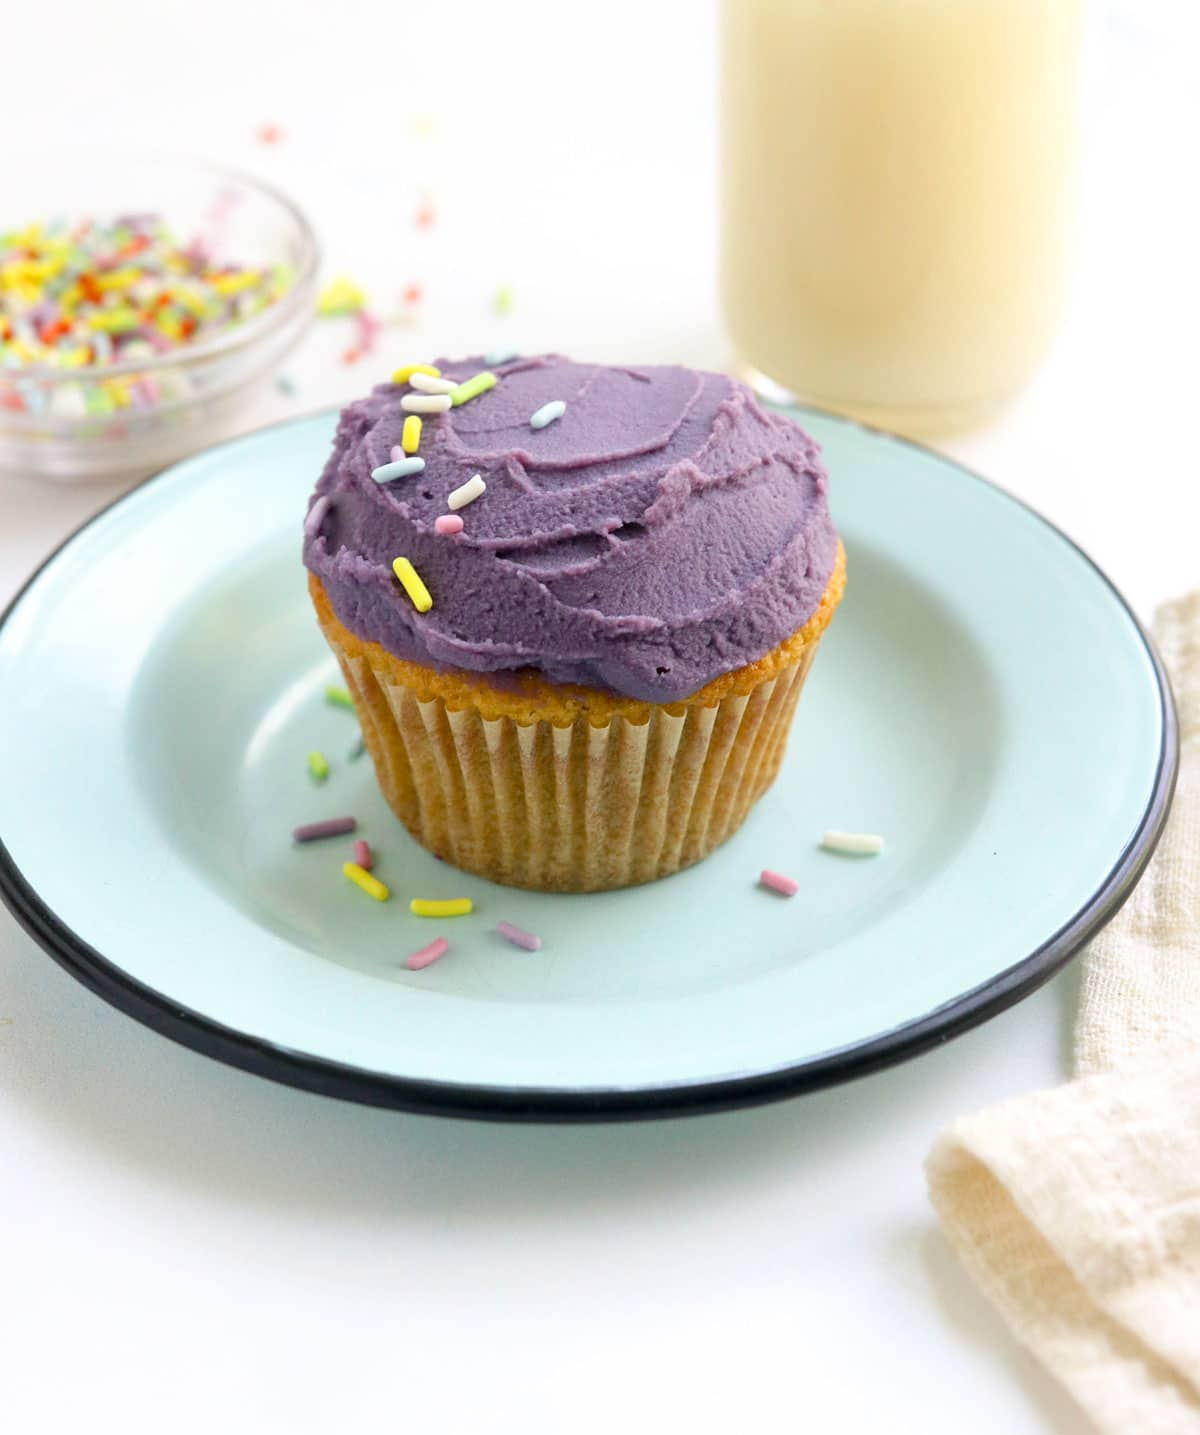 purple sweet potato frosting on cupcake on blue plate